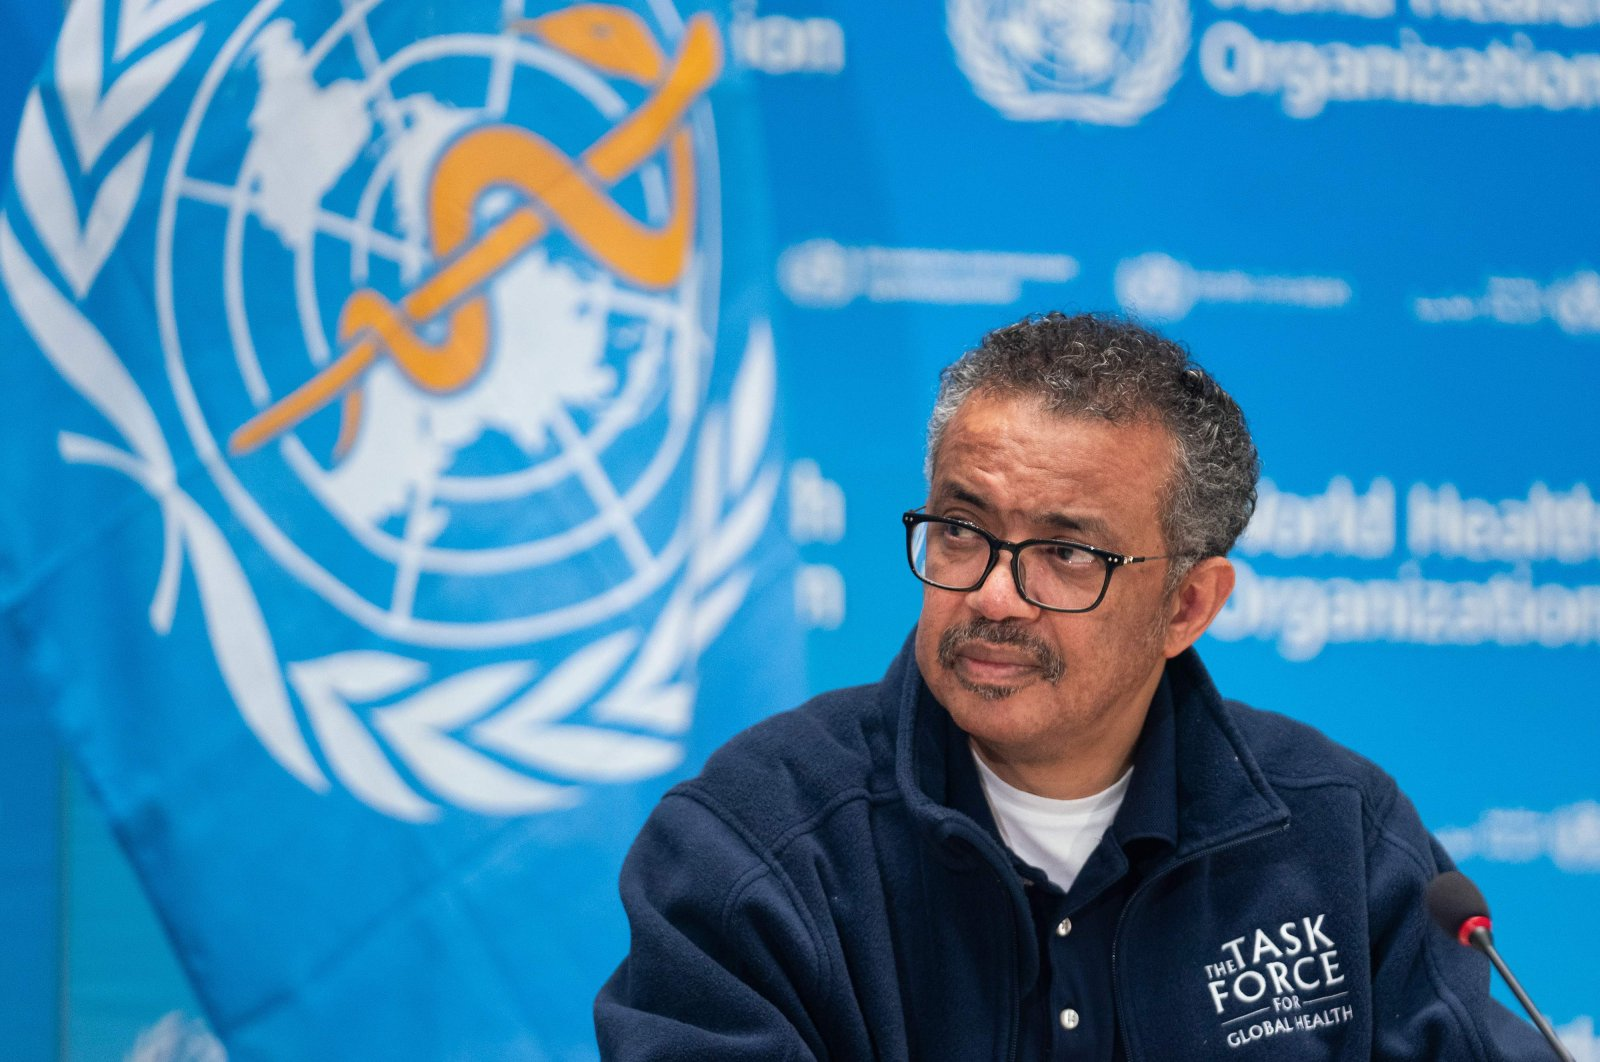 This handout image provided by the World Health Organization (WHO) shows WHO Director-General Tedros Adhanom Ghebreyesus ata virtual press conferencefollowing thesigning of a cooperation agreement with theInternational Olympic Committee (IOC),Geneva,May 16, 2020. (Photo by Christopher Black / World Health Organization via AFP Photo)